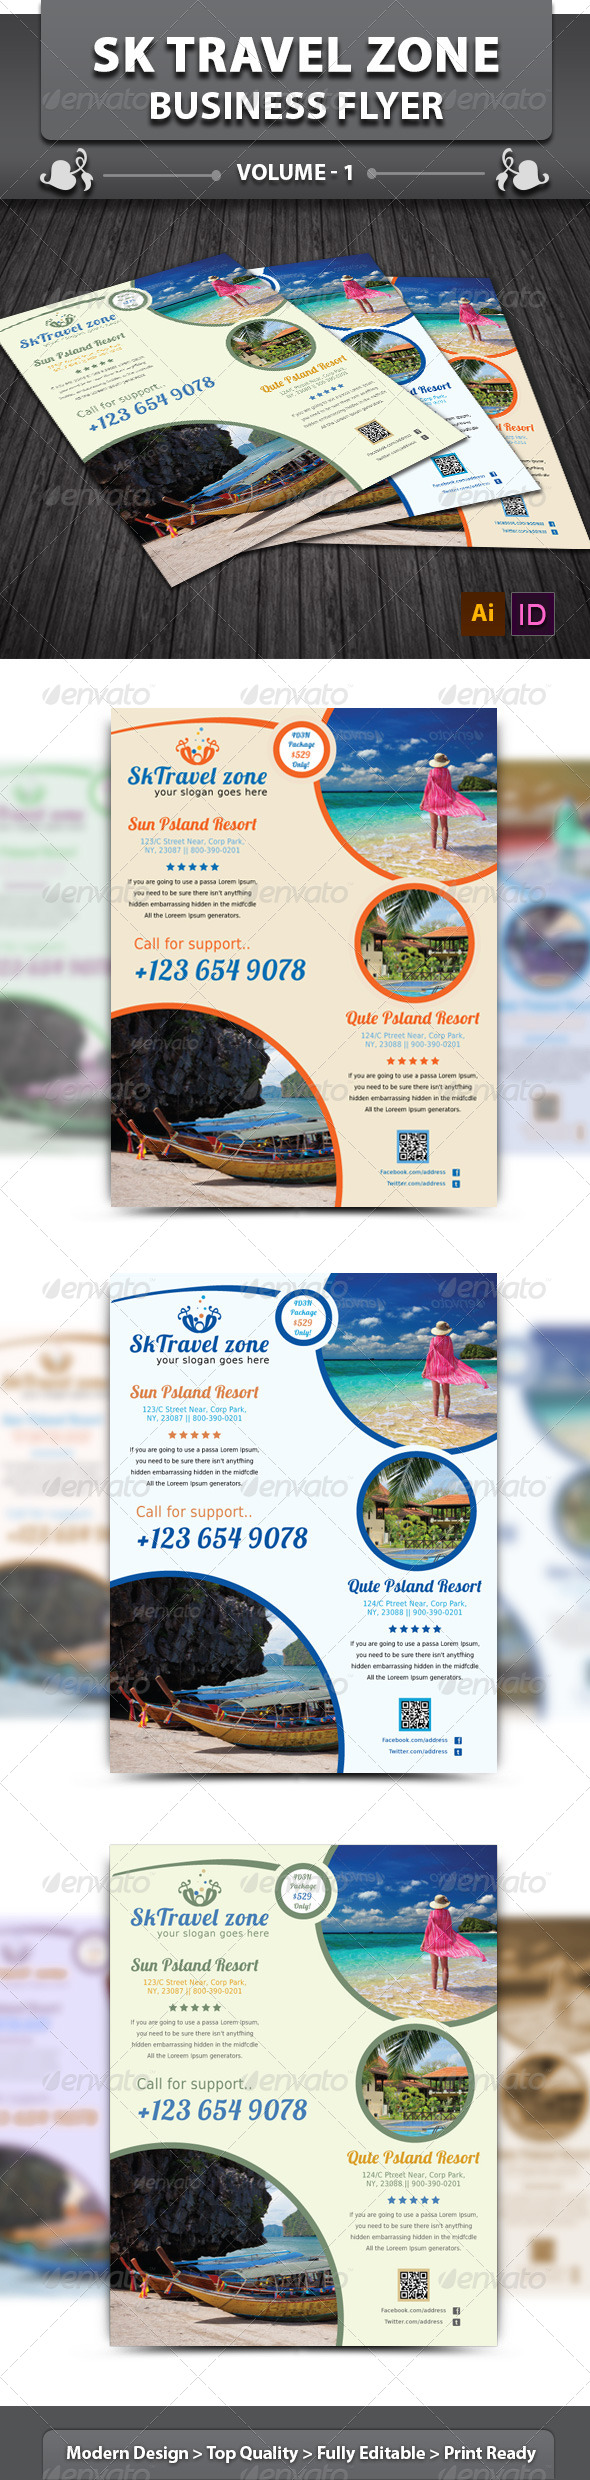 Travel / Tourism Business Flyer | Volume 1 - Corporate Flyers